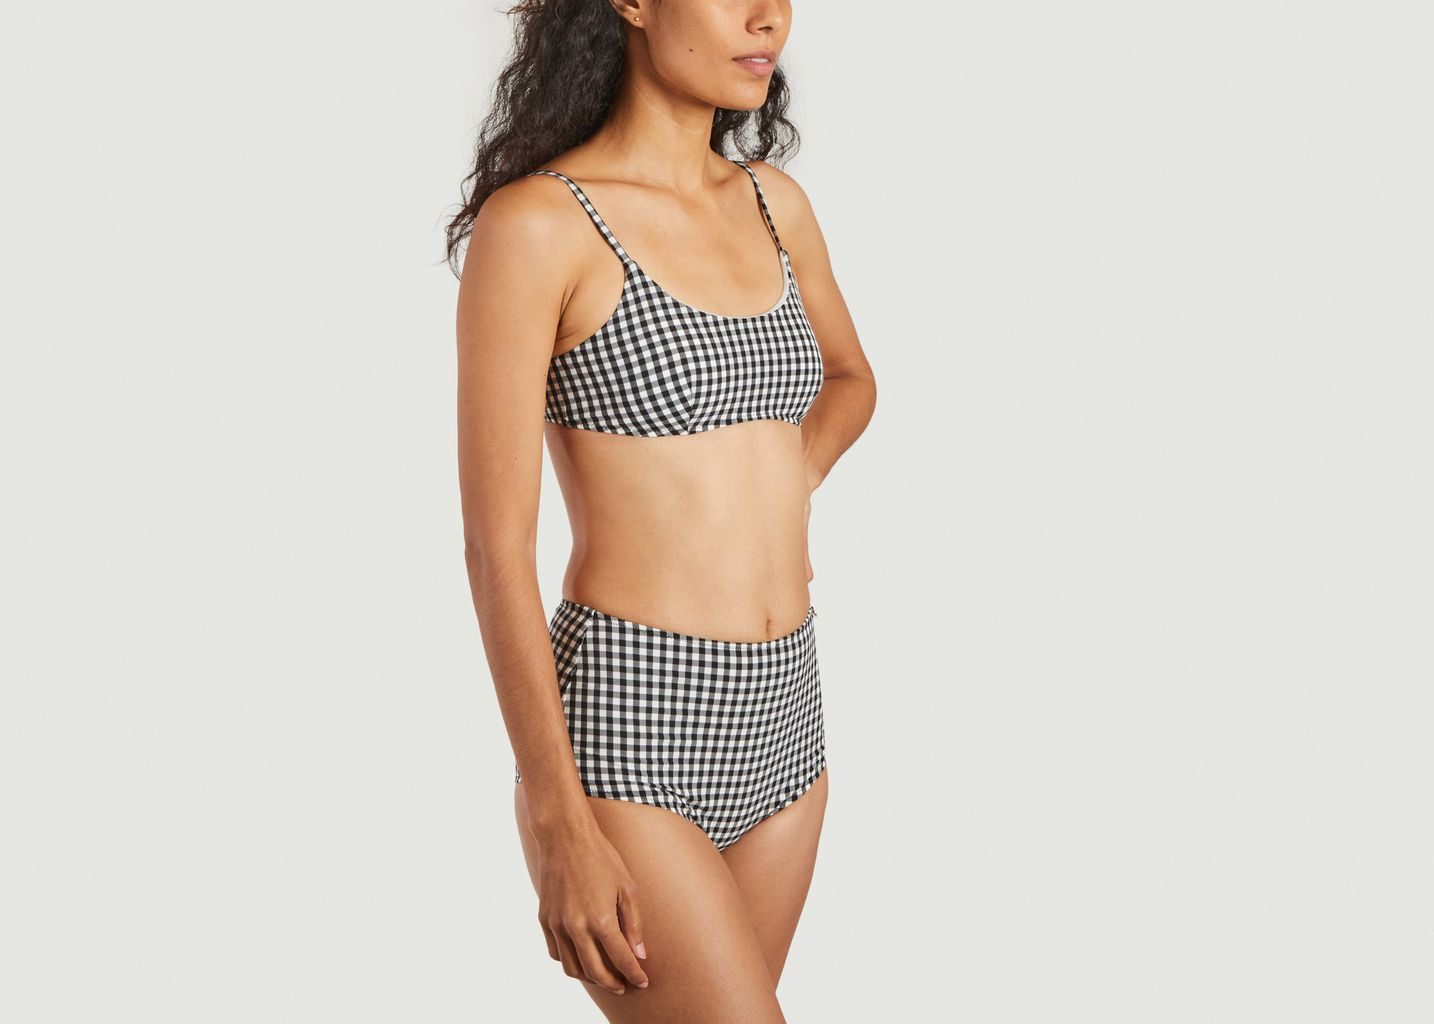 Maillot 2 pièces vichy taille haute - Bohodot